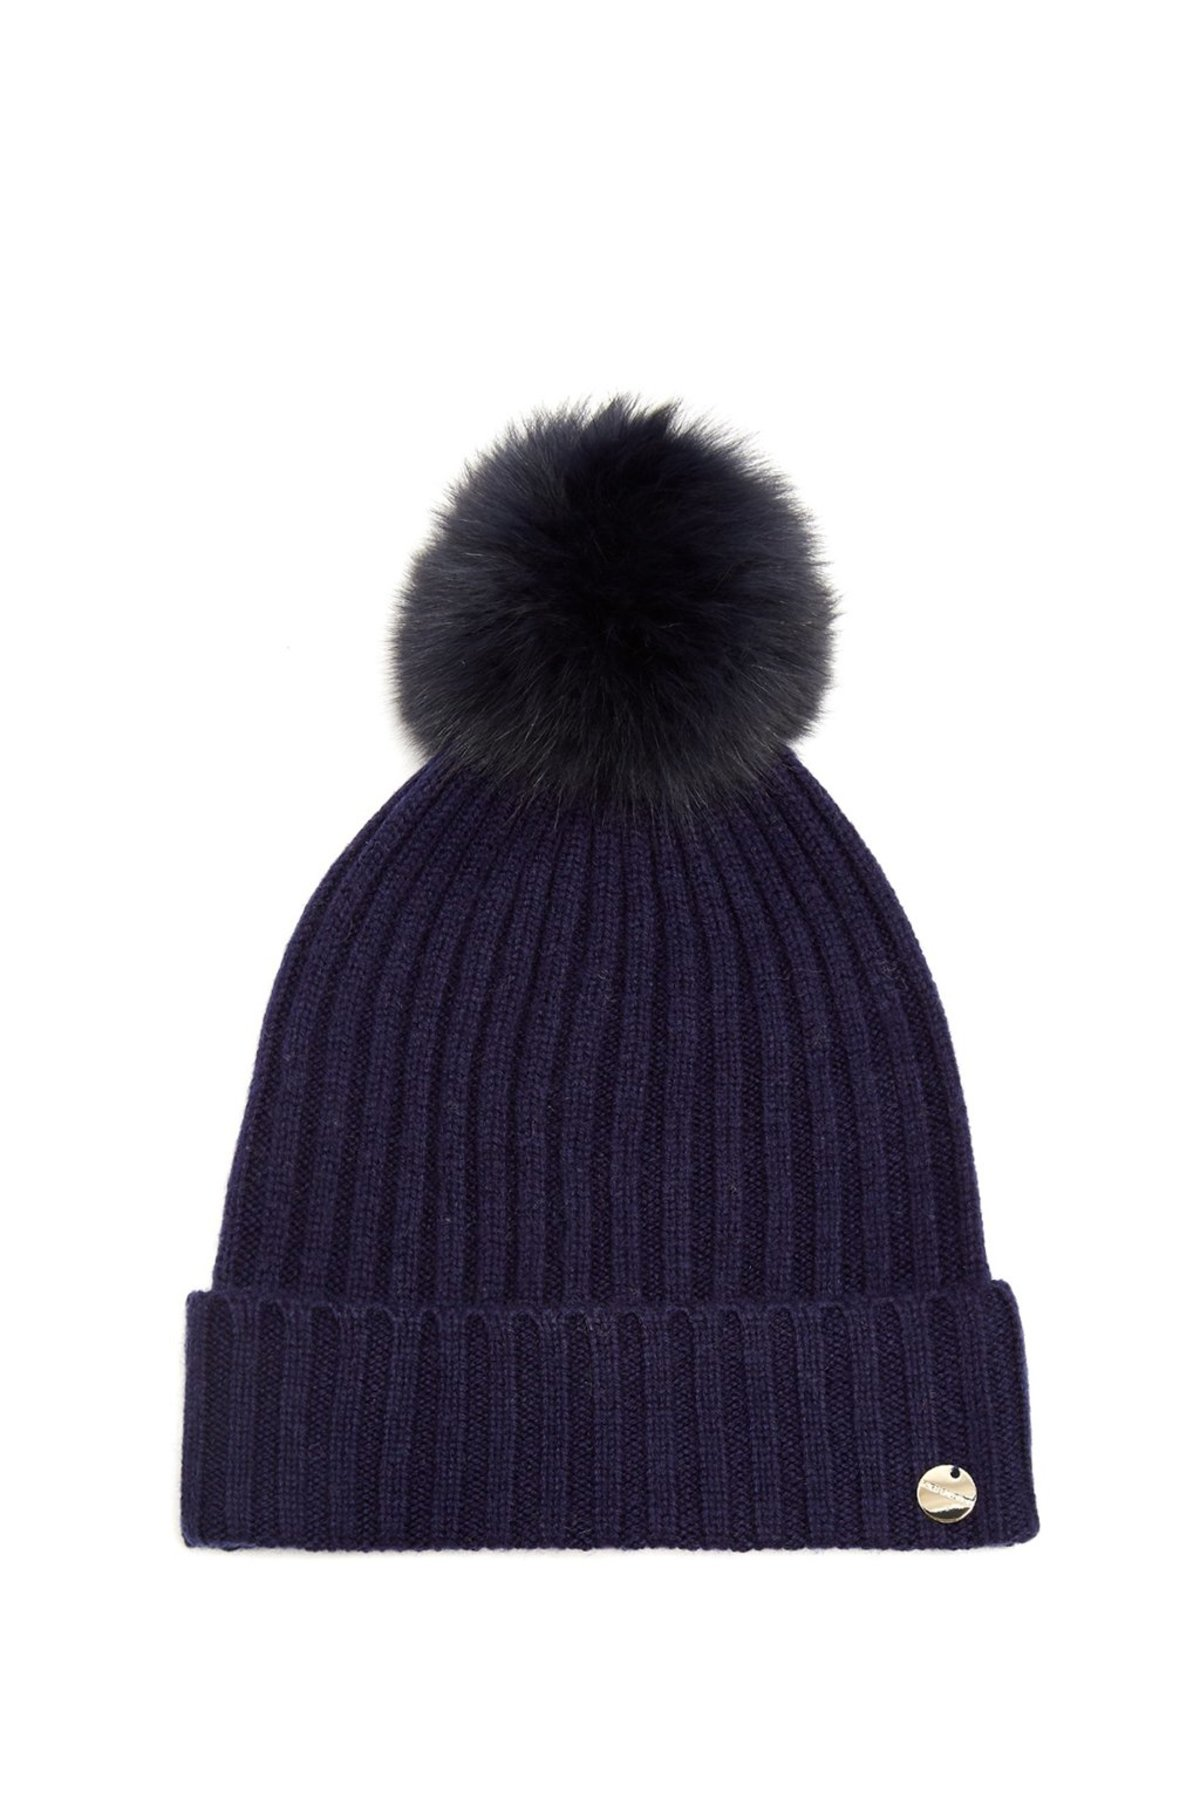 Yves Salomon Navy Fur Pom Pom Hat  39dca6c0825b